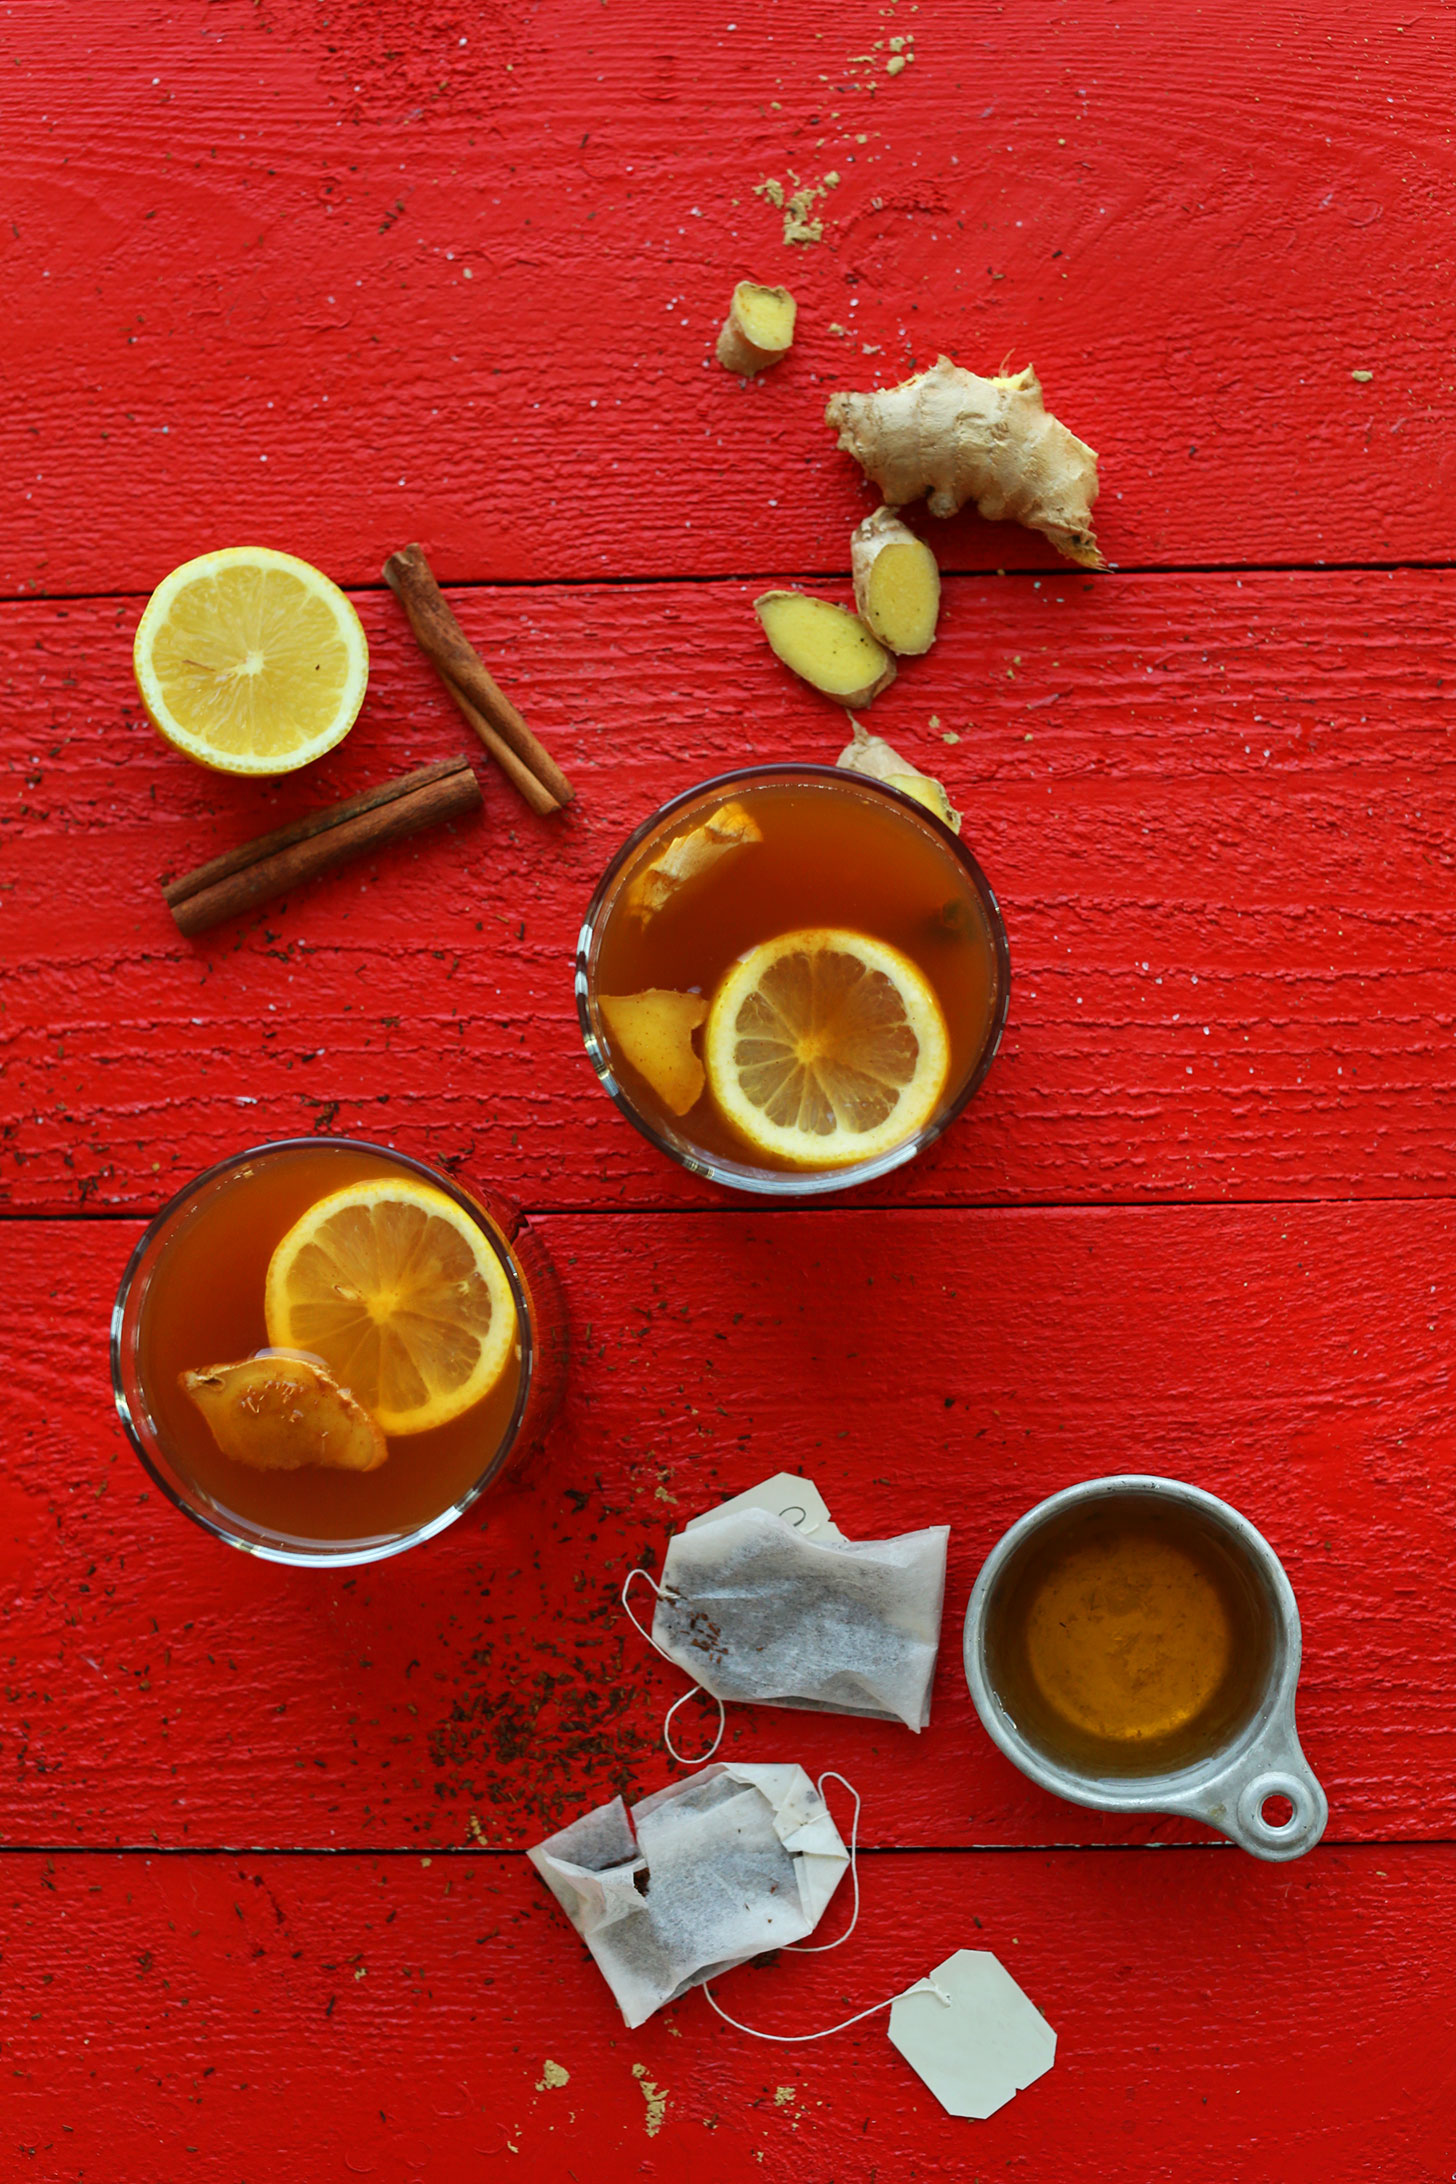 DELICIOUS Apple Cider Rooibos HOT TODDY! 7 Simple ingredients, warm, comforting, naturally sweetened! #vegan #toddy #beverage #recipe #hottoddy #cocktail #minimalistbaker